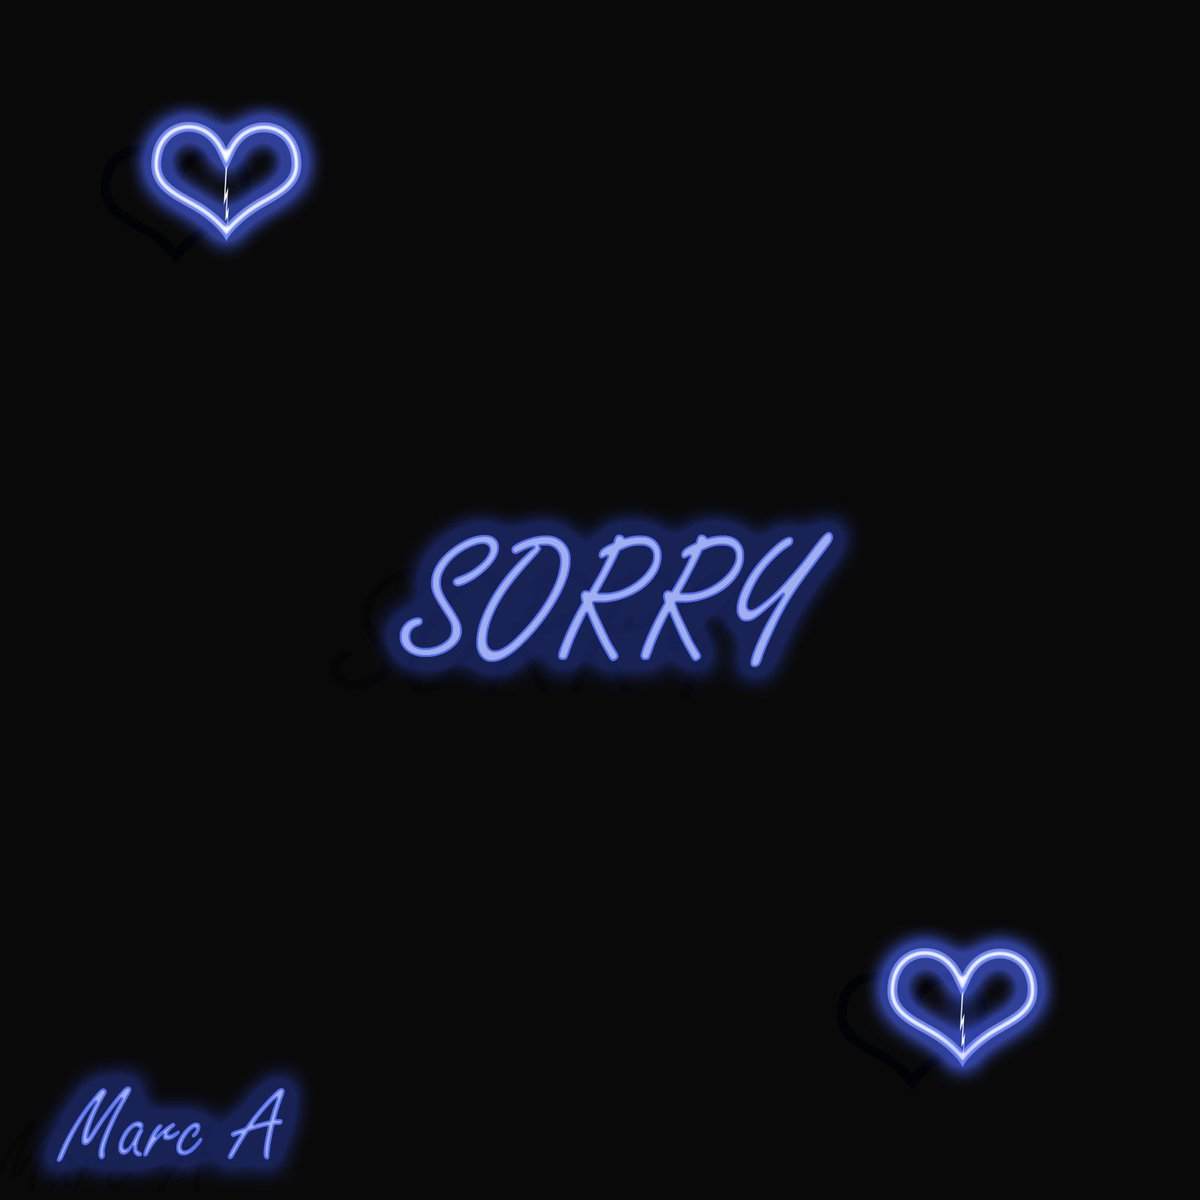 My new single 'Sorry' dropping on all platforms this Saturday at 9pm.  go time! #Sorry #RnB pic.twitter.com/A0dAajLojs